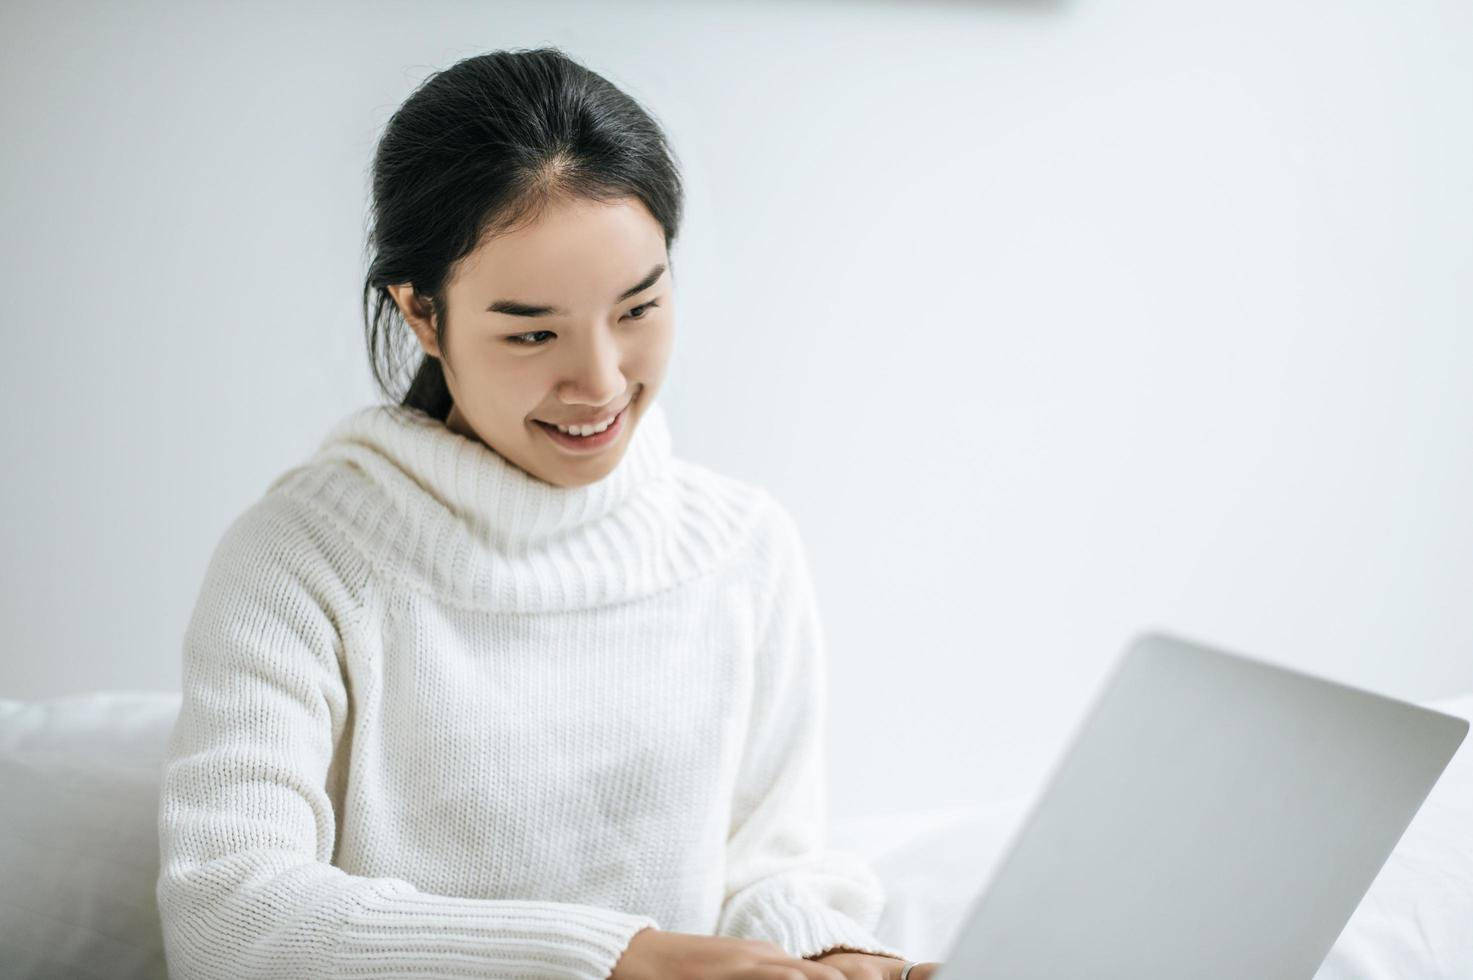 A young woman happily playing on her laptop photo